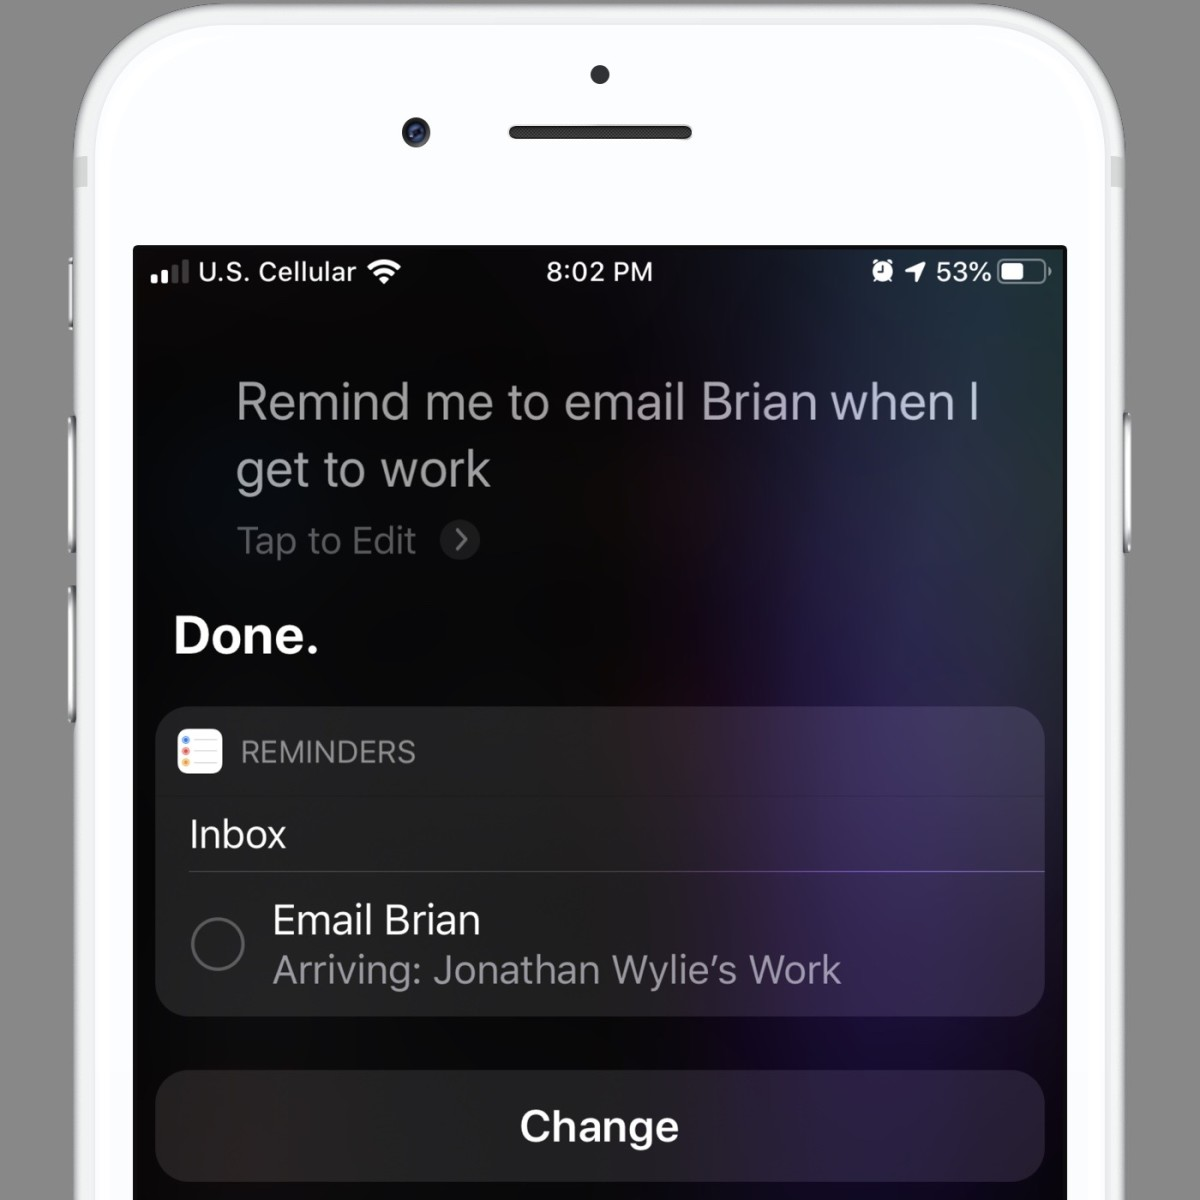 Siri is a great way to add tasks to Apple's Reminders app